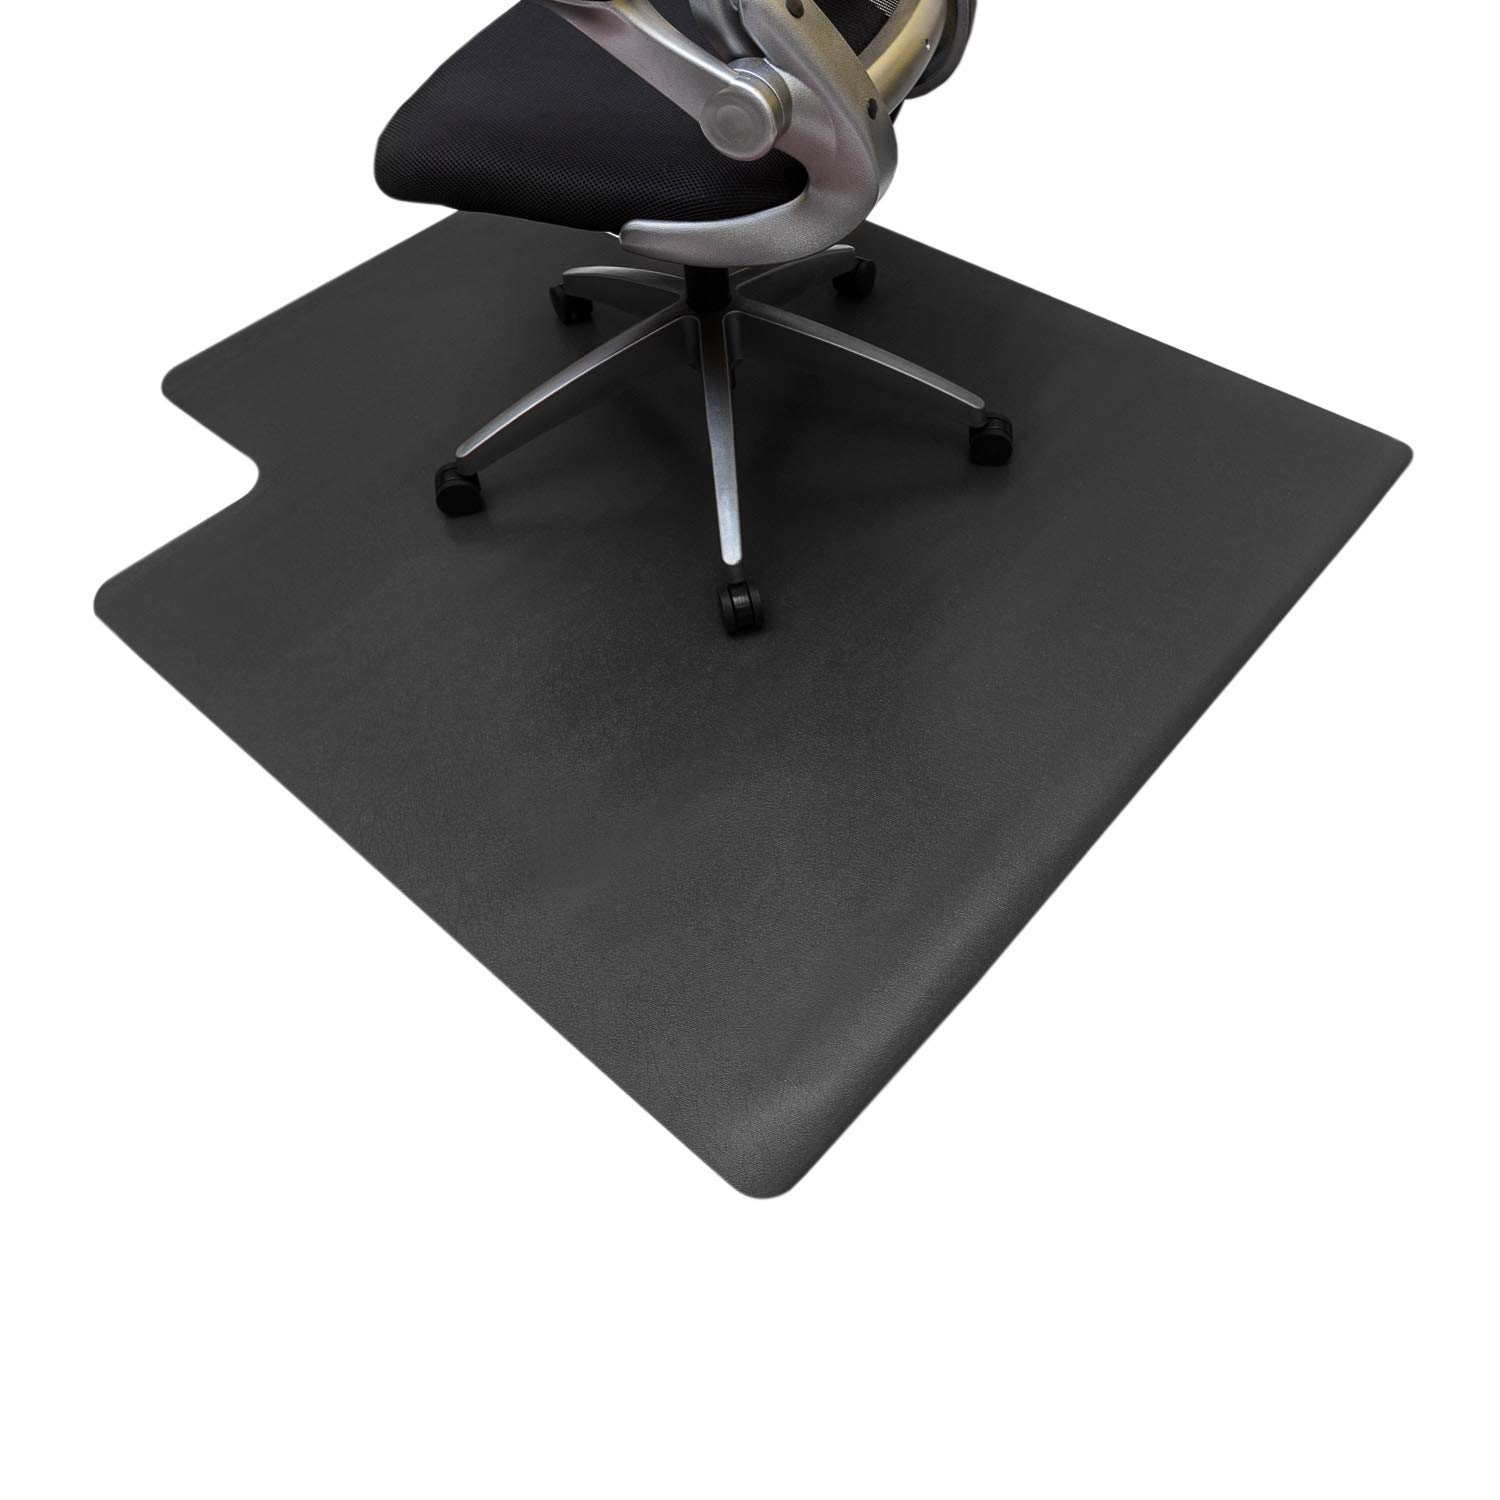 Resilia Office Desk Chair Mat with Lip - PVC Mat for Hard Floor Protection, Black, 36 Inches x 48 Inches, Made in The USA by Resilia